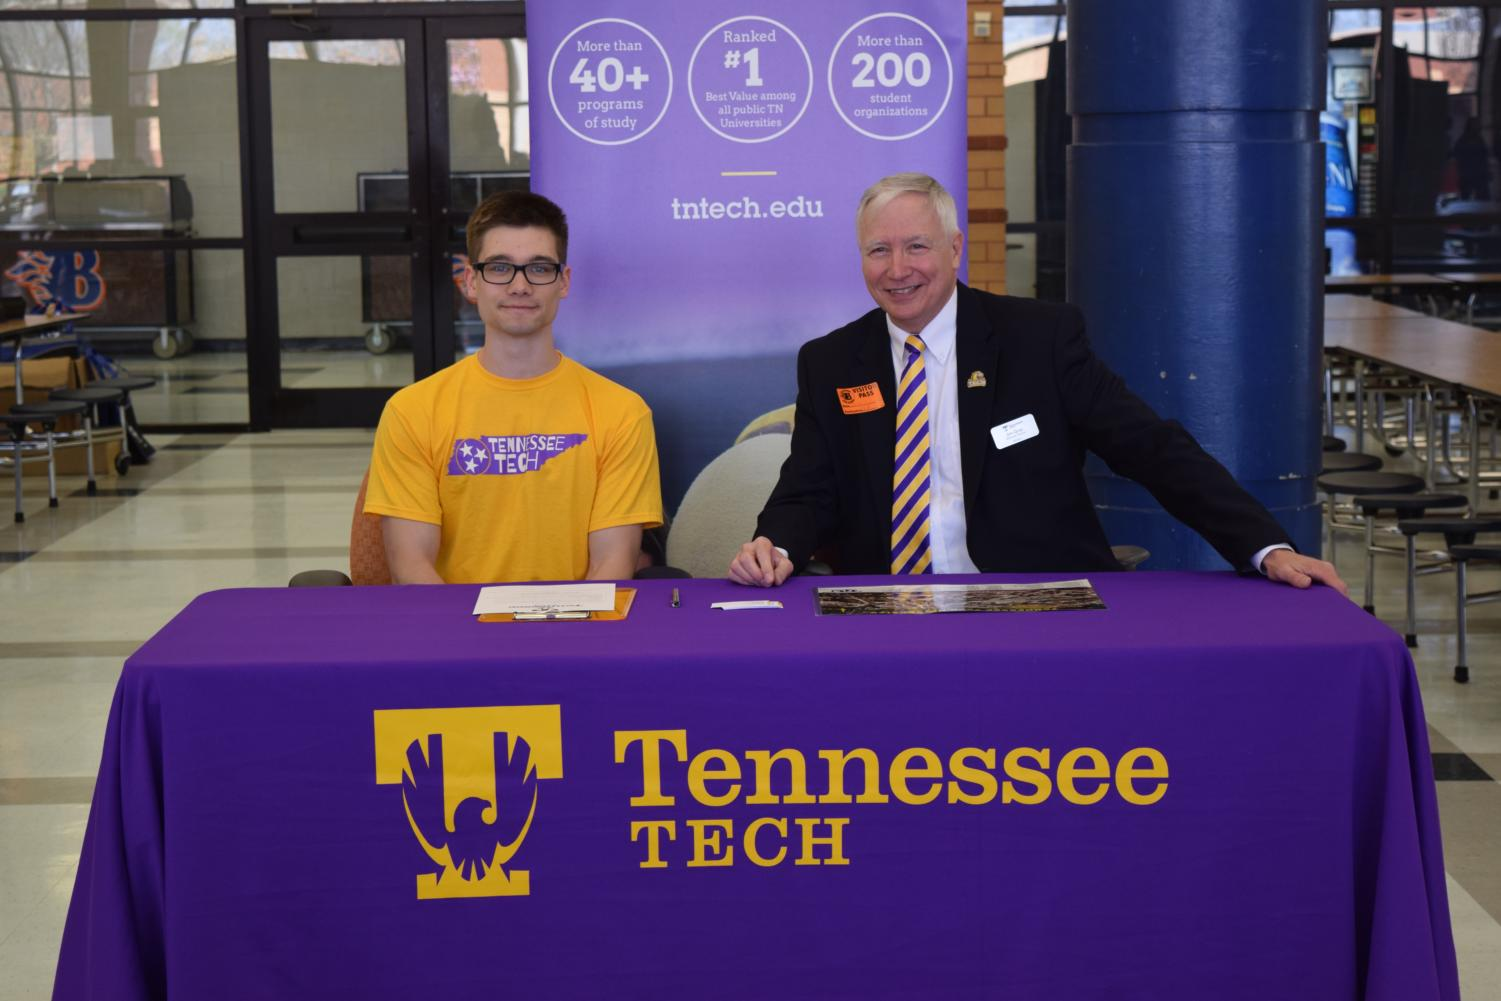 Nathan+Jenkins+will+attend+Tennessee+Tech+in+the+fall.